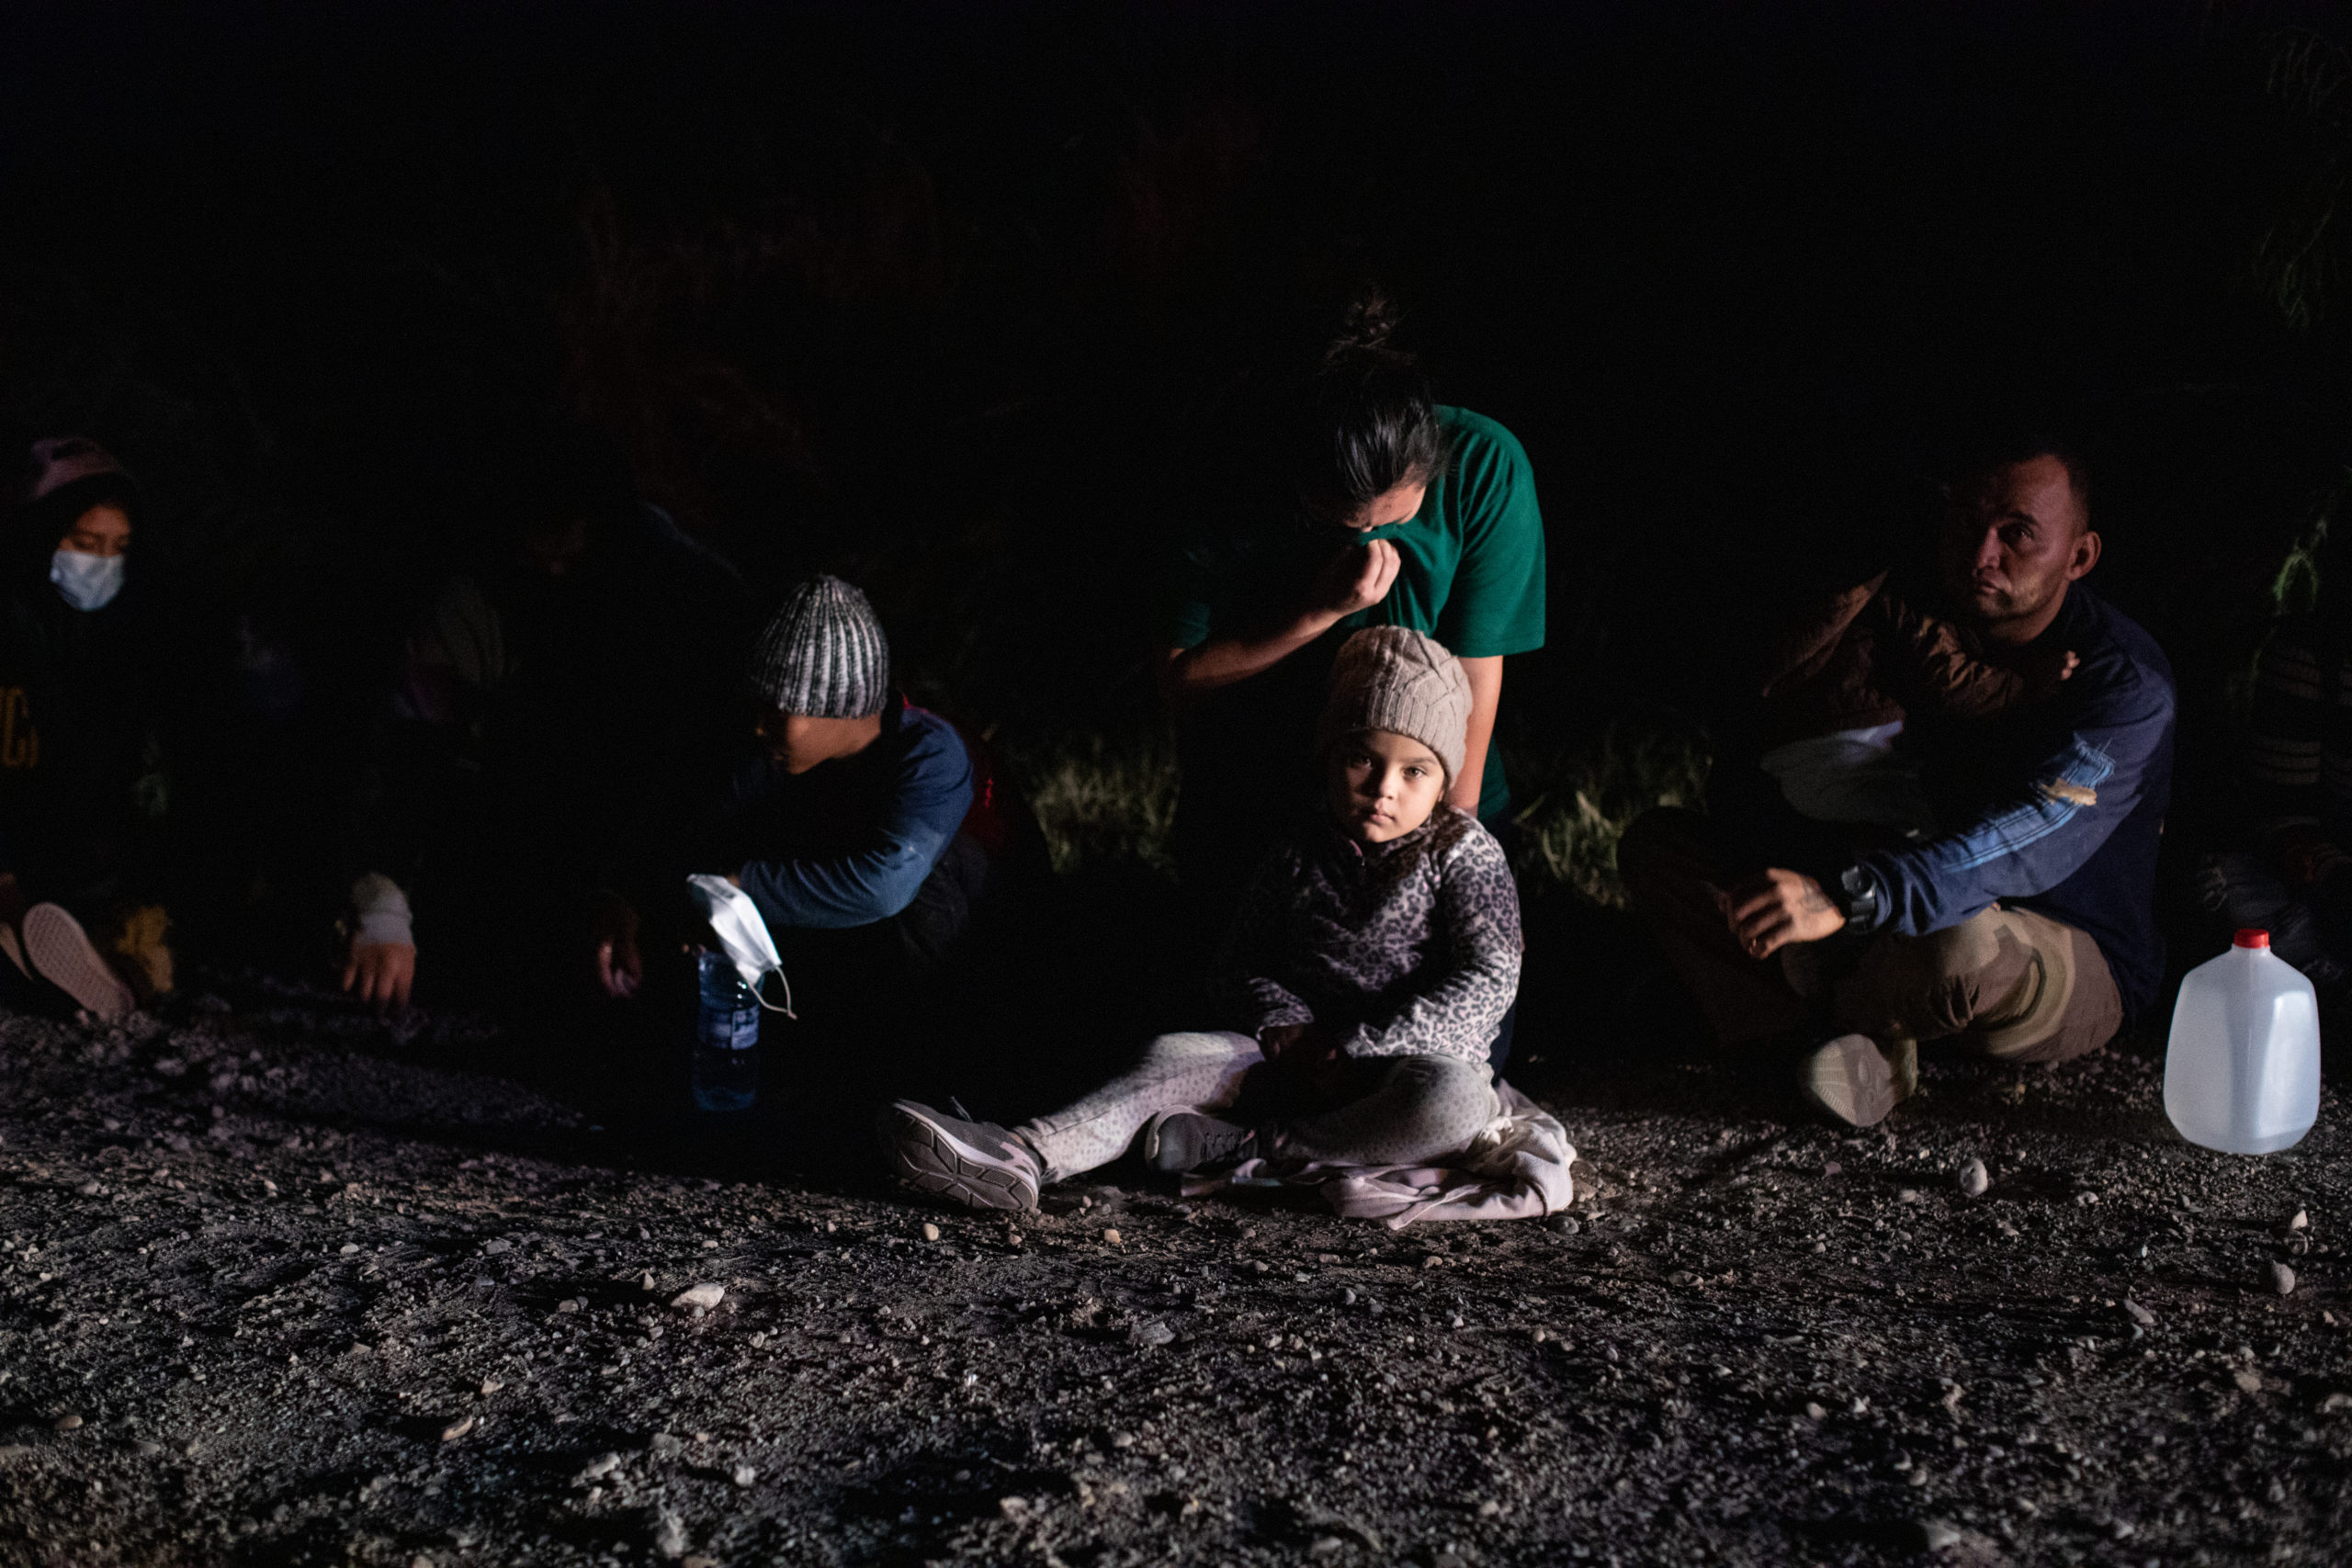 Illegal migrants sit in a line and wait to be processed by law enforcement officials who gathered biometrical data from them before transporting them to a processing facility in La Joya, Texas, on March 25, 2021. (Kaylee Greenlee. - Daily Caller News Foundation)